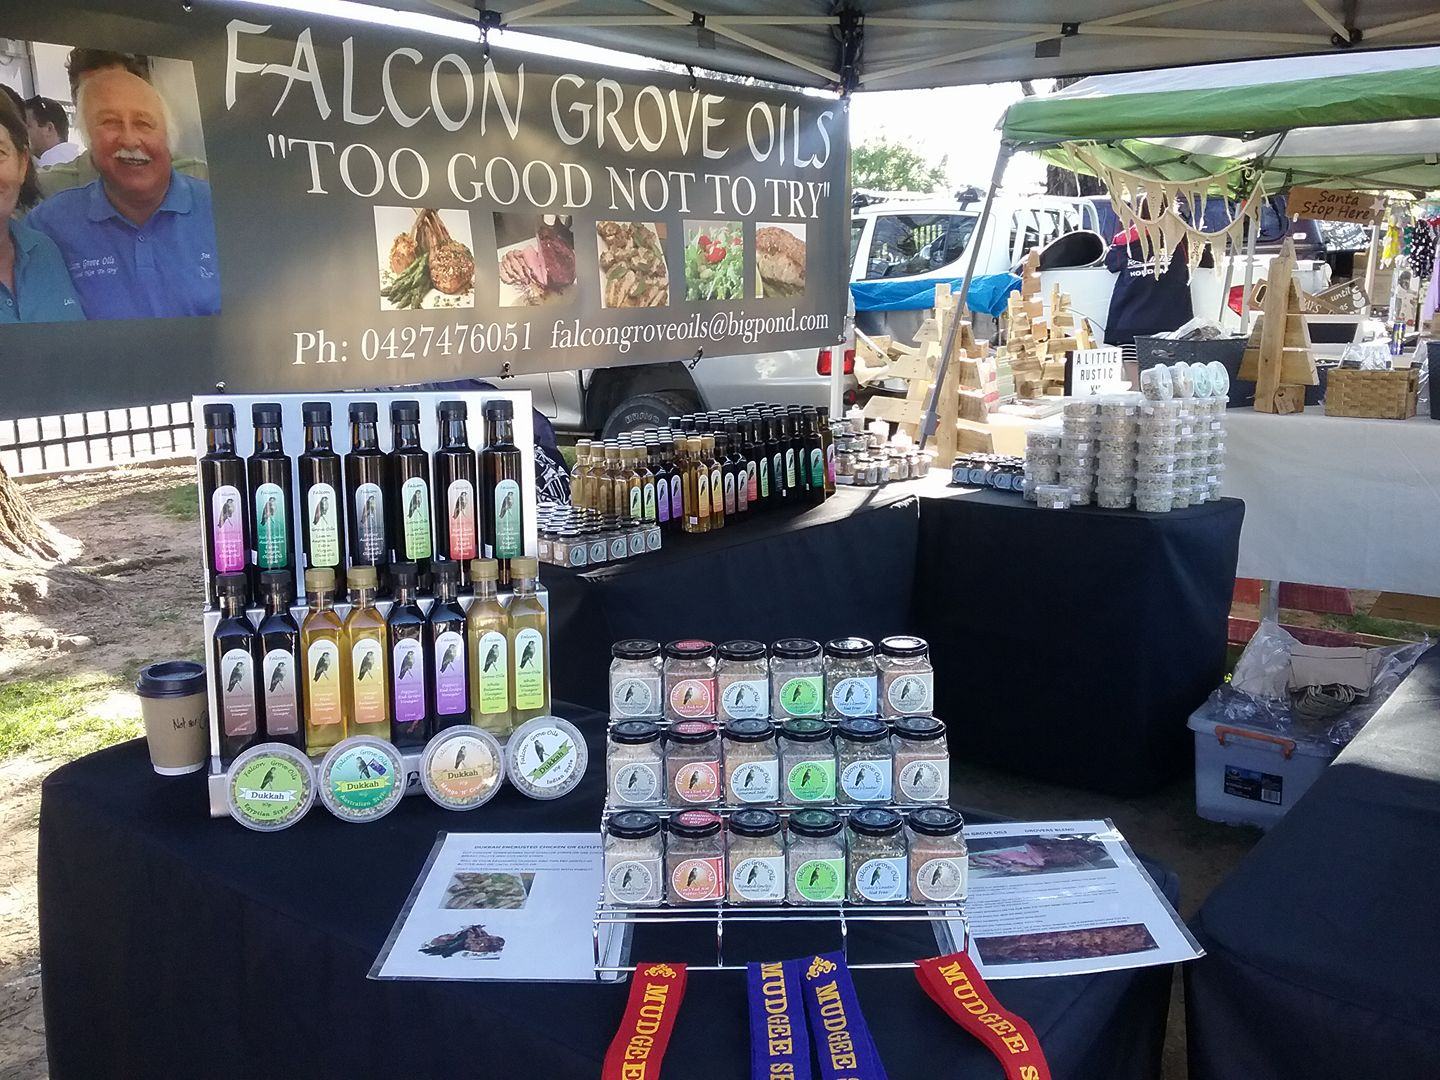 Falcon Grove Oils Nosh Exhibitor